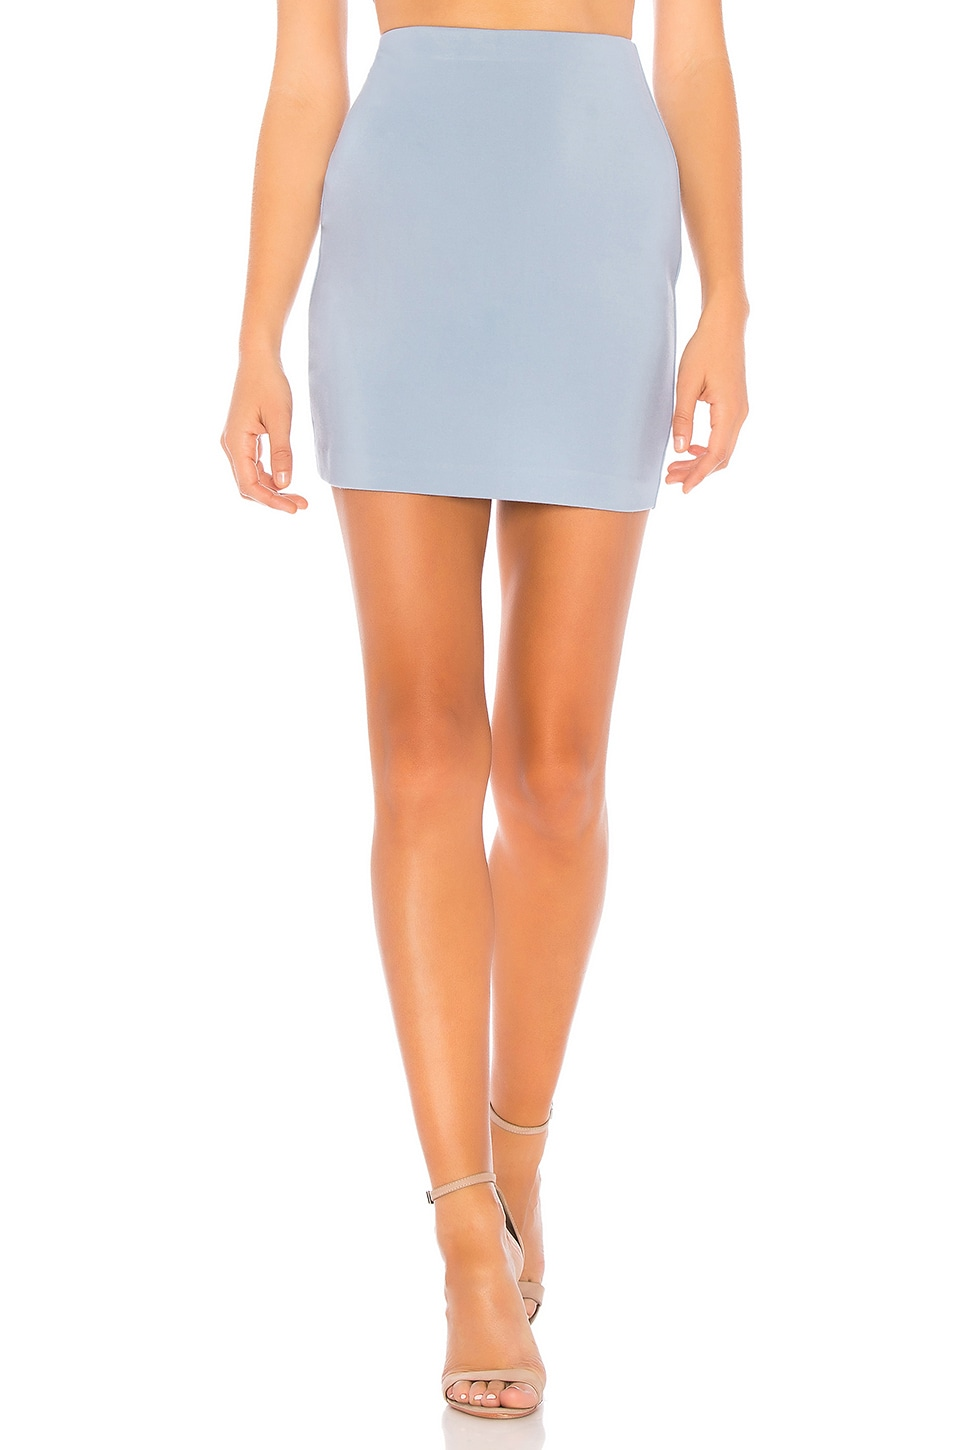 WAILEA MINI SKIRT